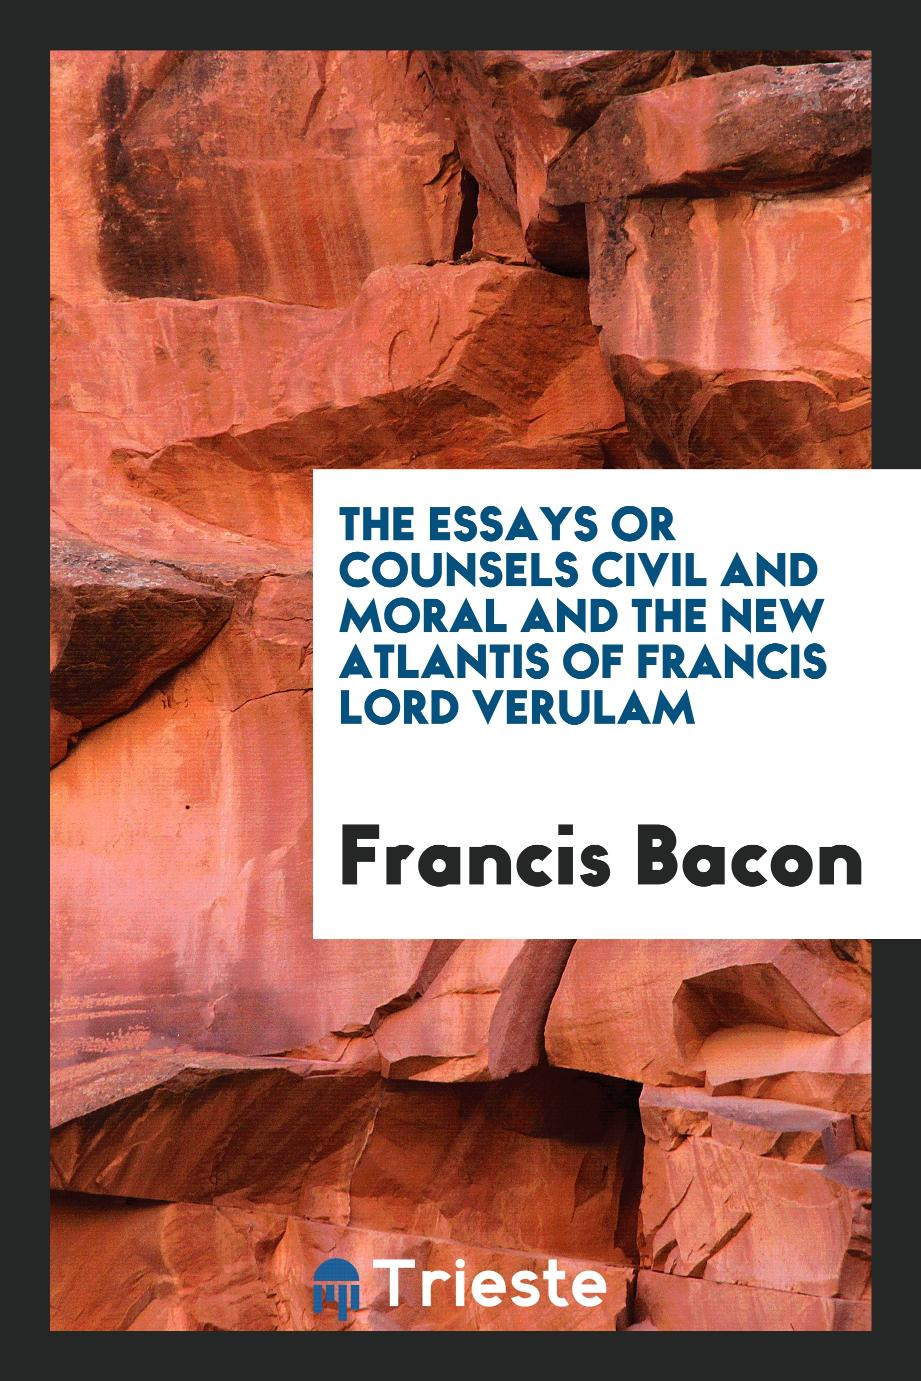 The essays or counsels civil and moral and the new Atlantis of Francis Lord Verulam